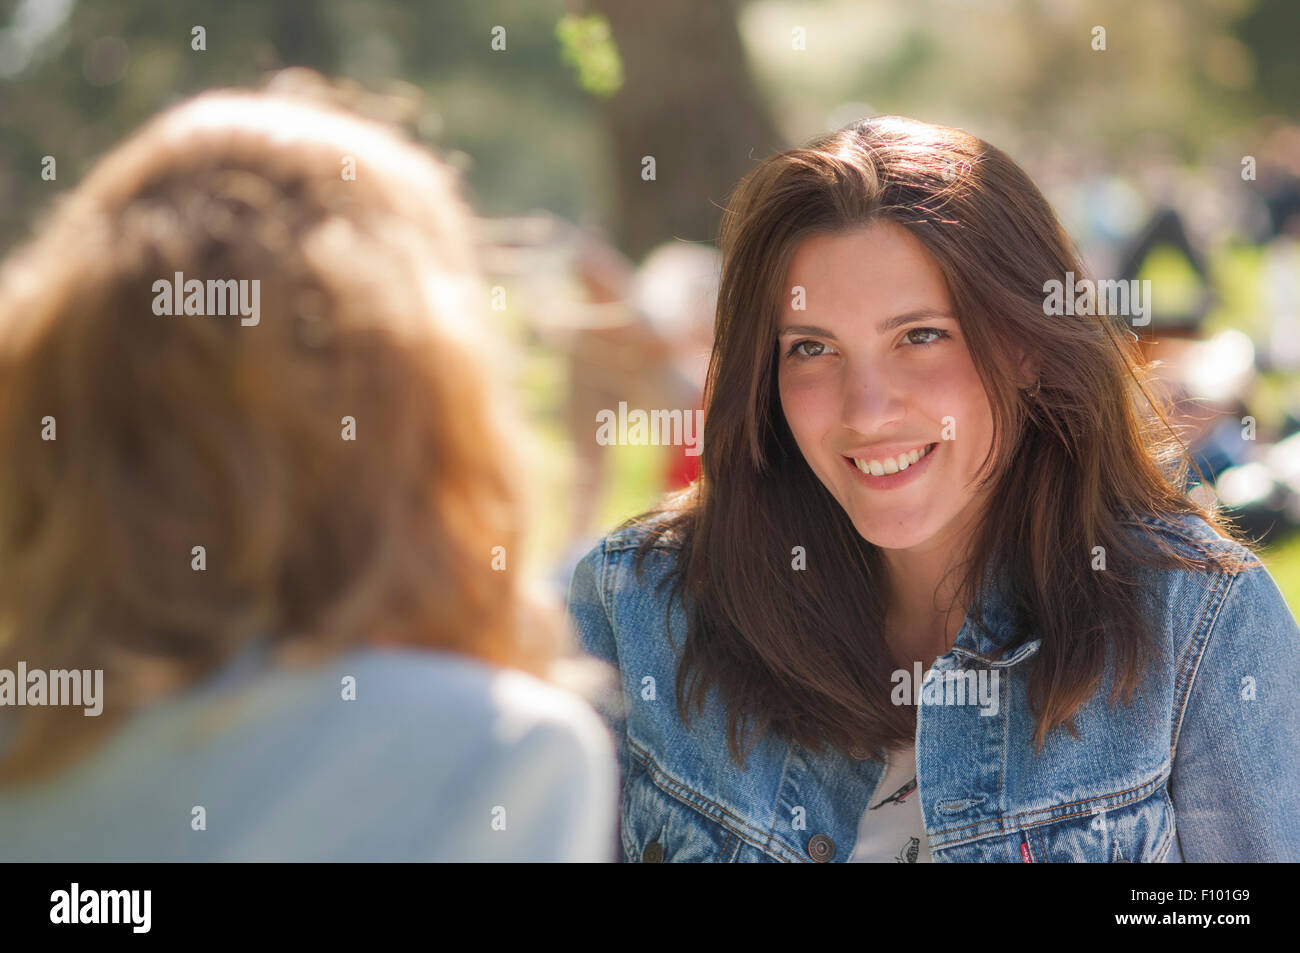 WOMAN OUTDOORS - Stock Image